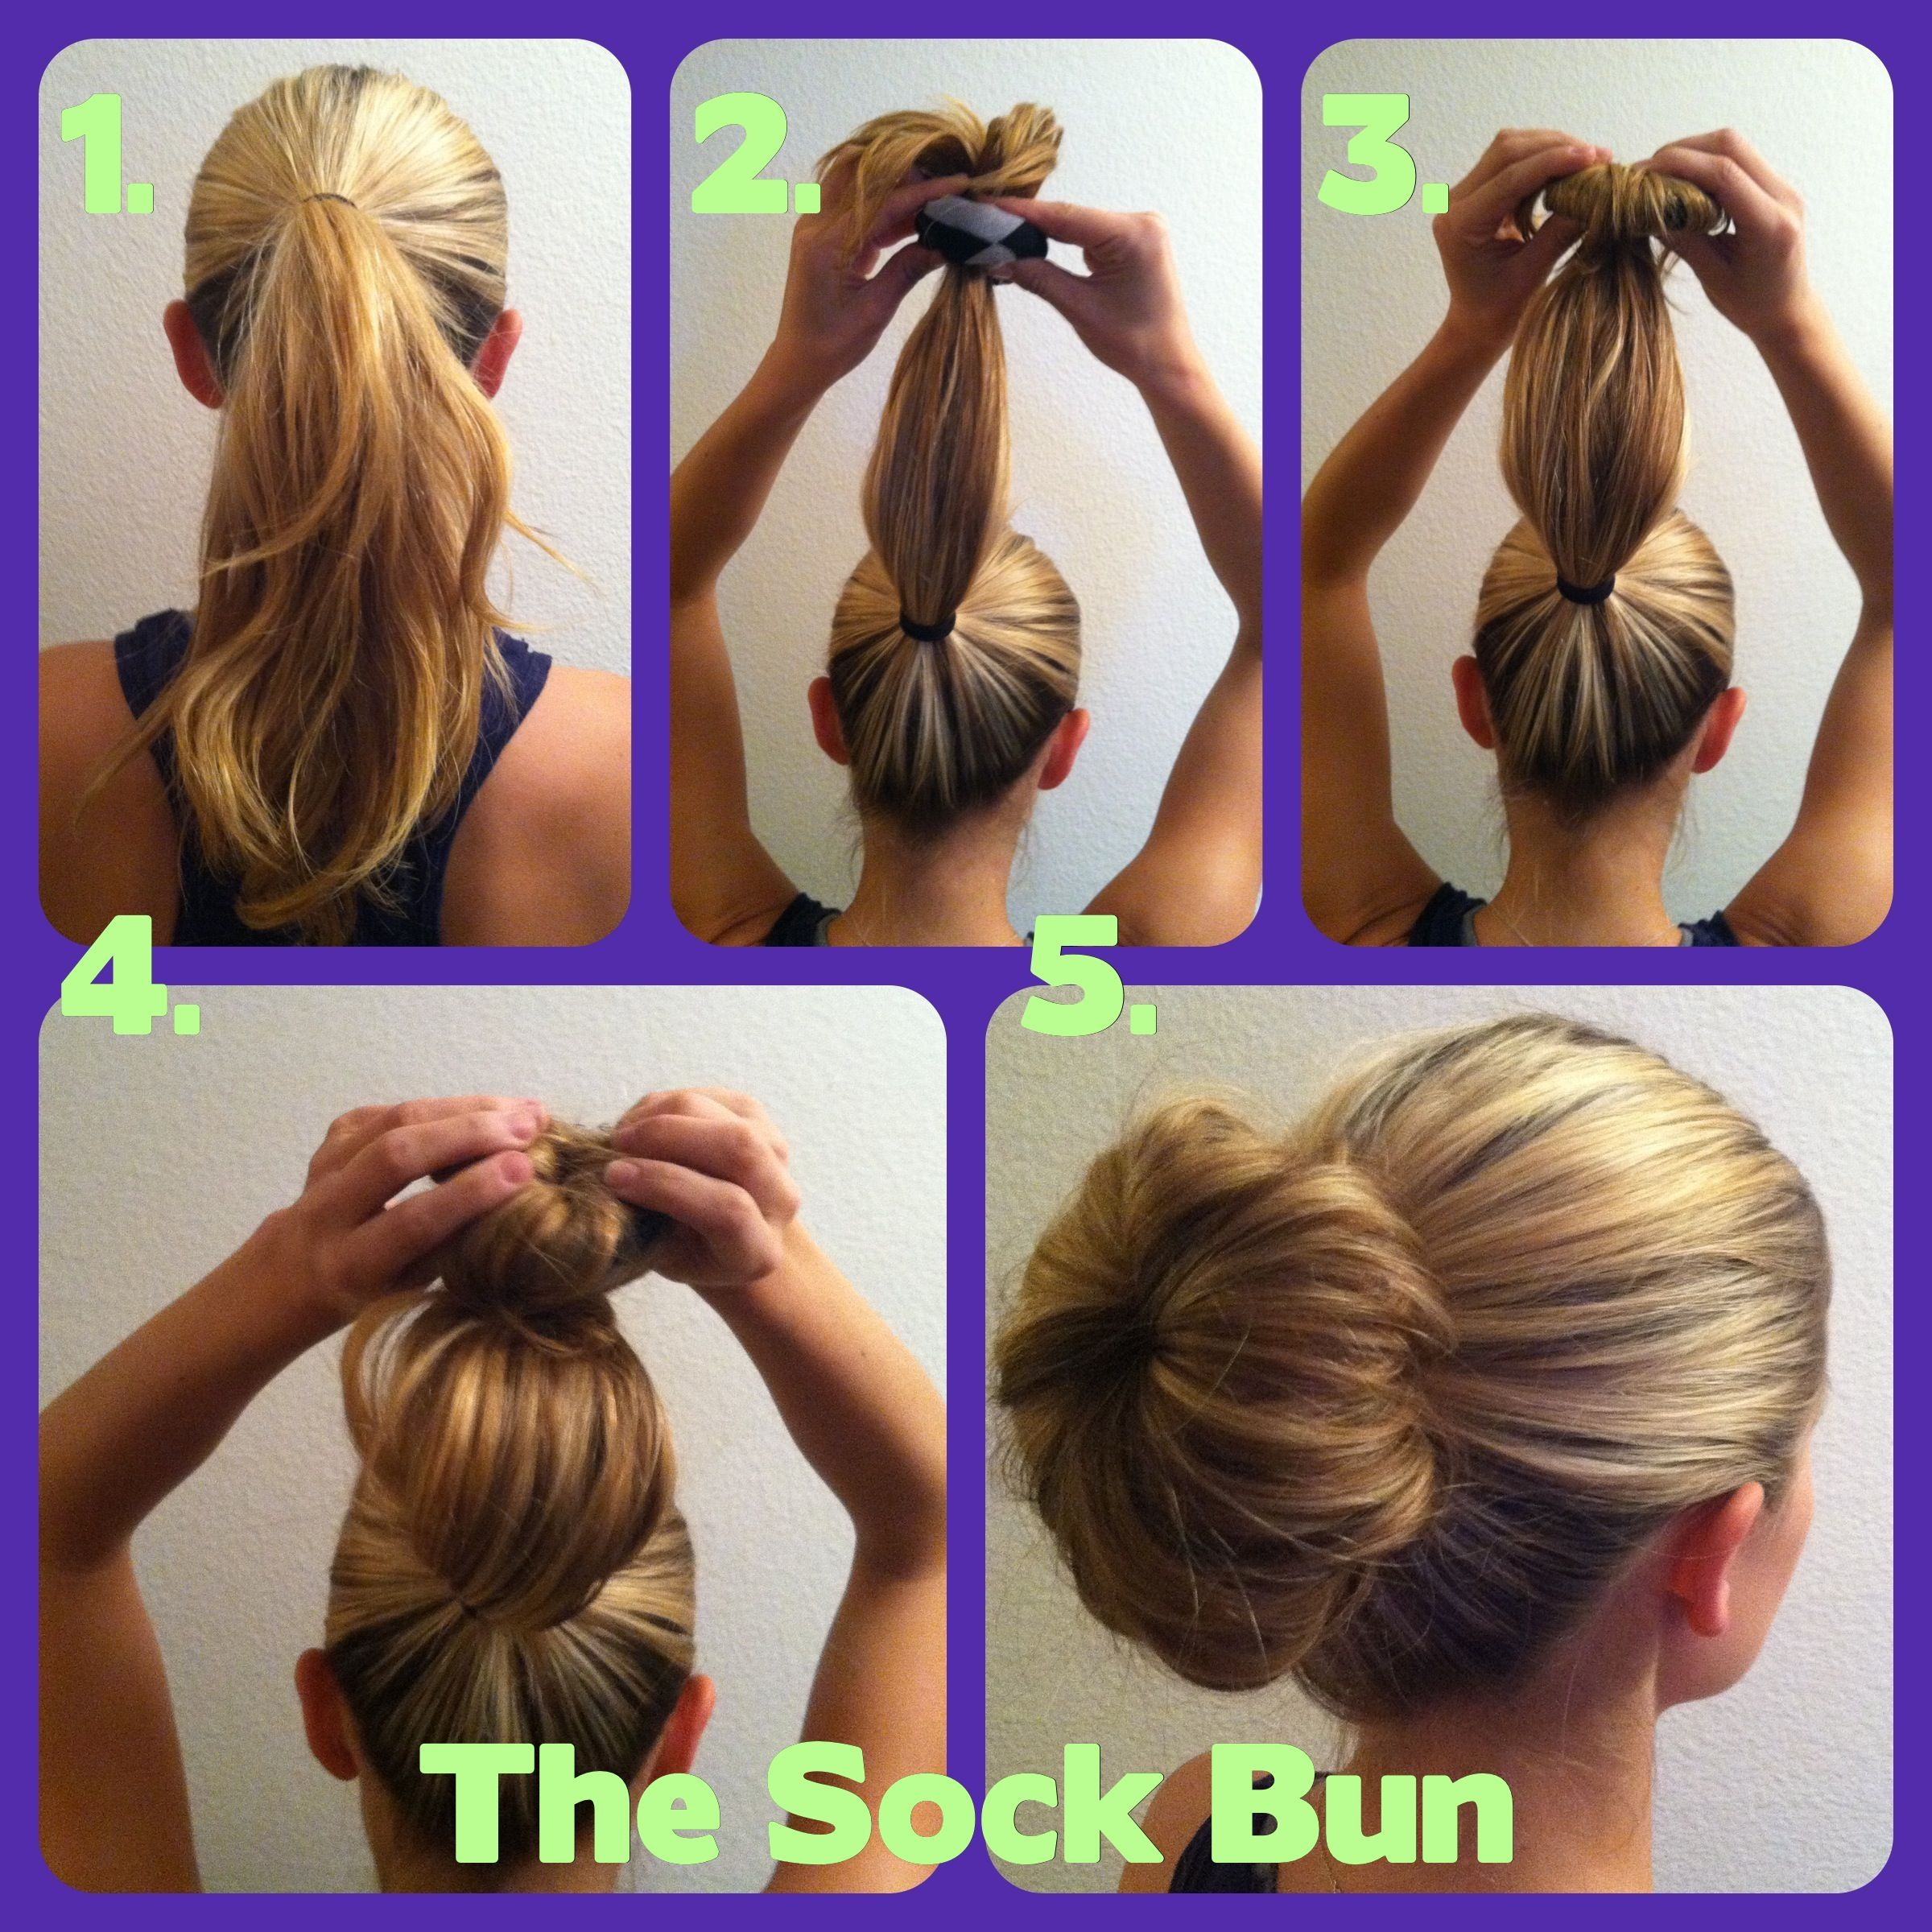 How To Do Your Hair For School Sock Bun Even Fine Hair Can Look Plumped Up With This One Hair Donut Hair Styles Hair Hacks